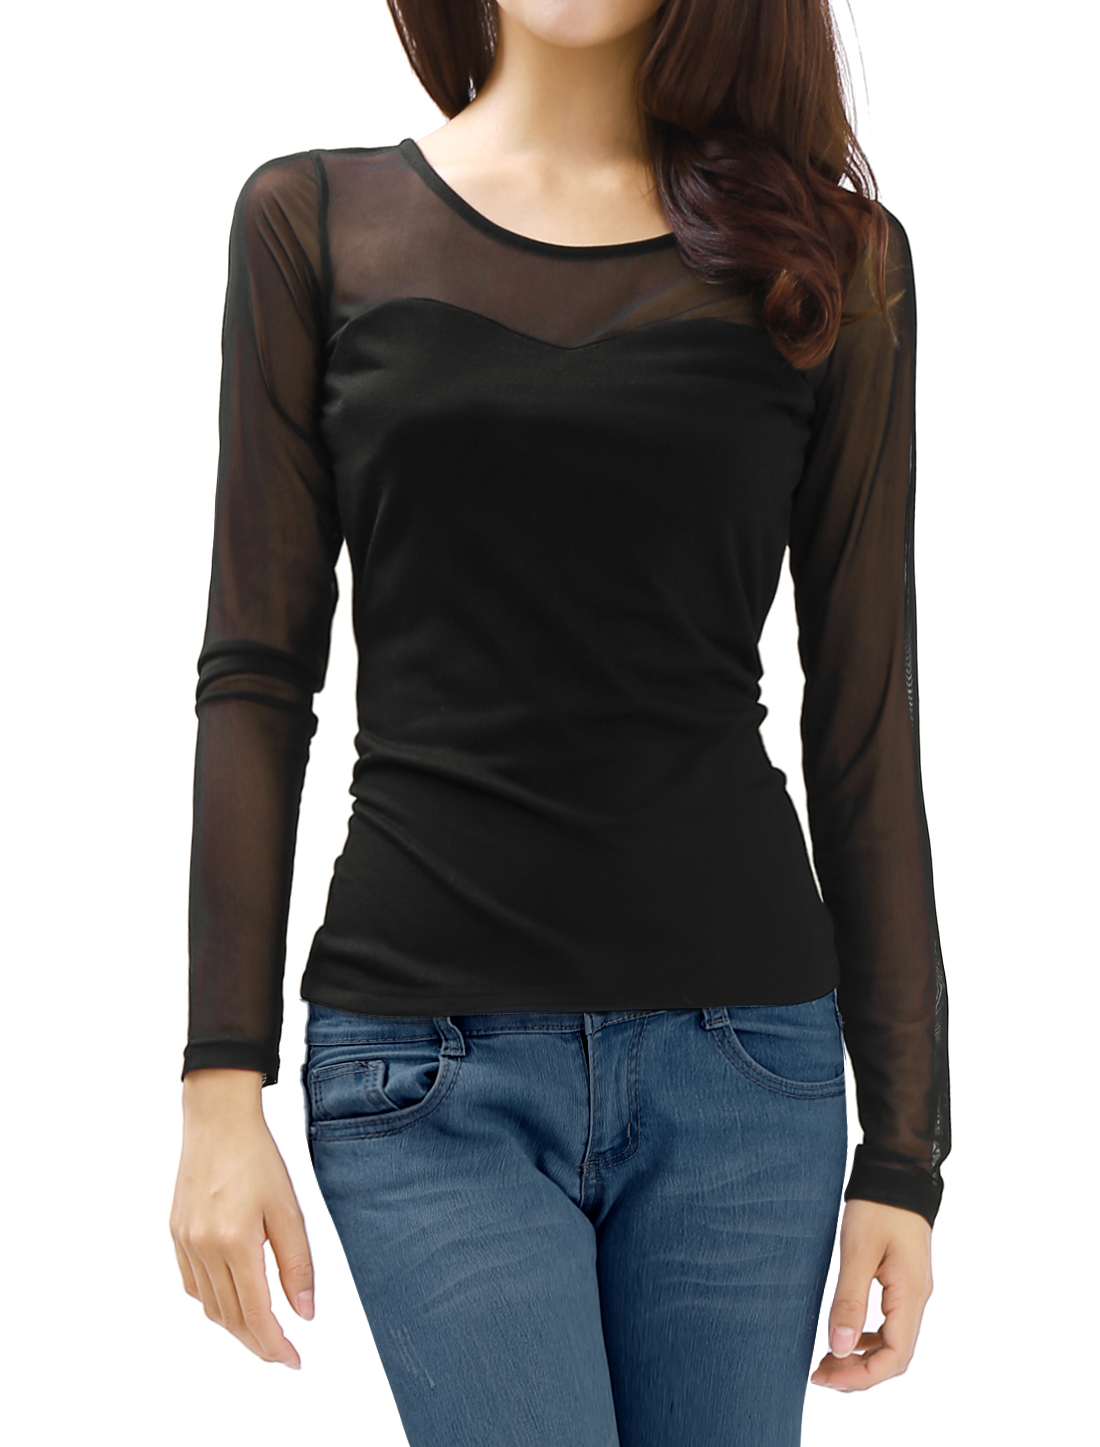 Ladies See Through Mesh Long Sleeve Shirt Black M